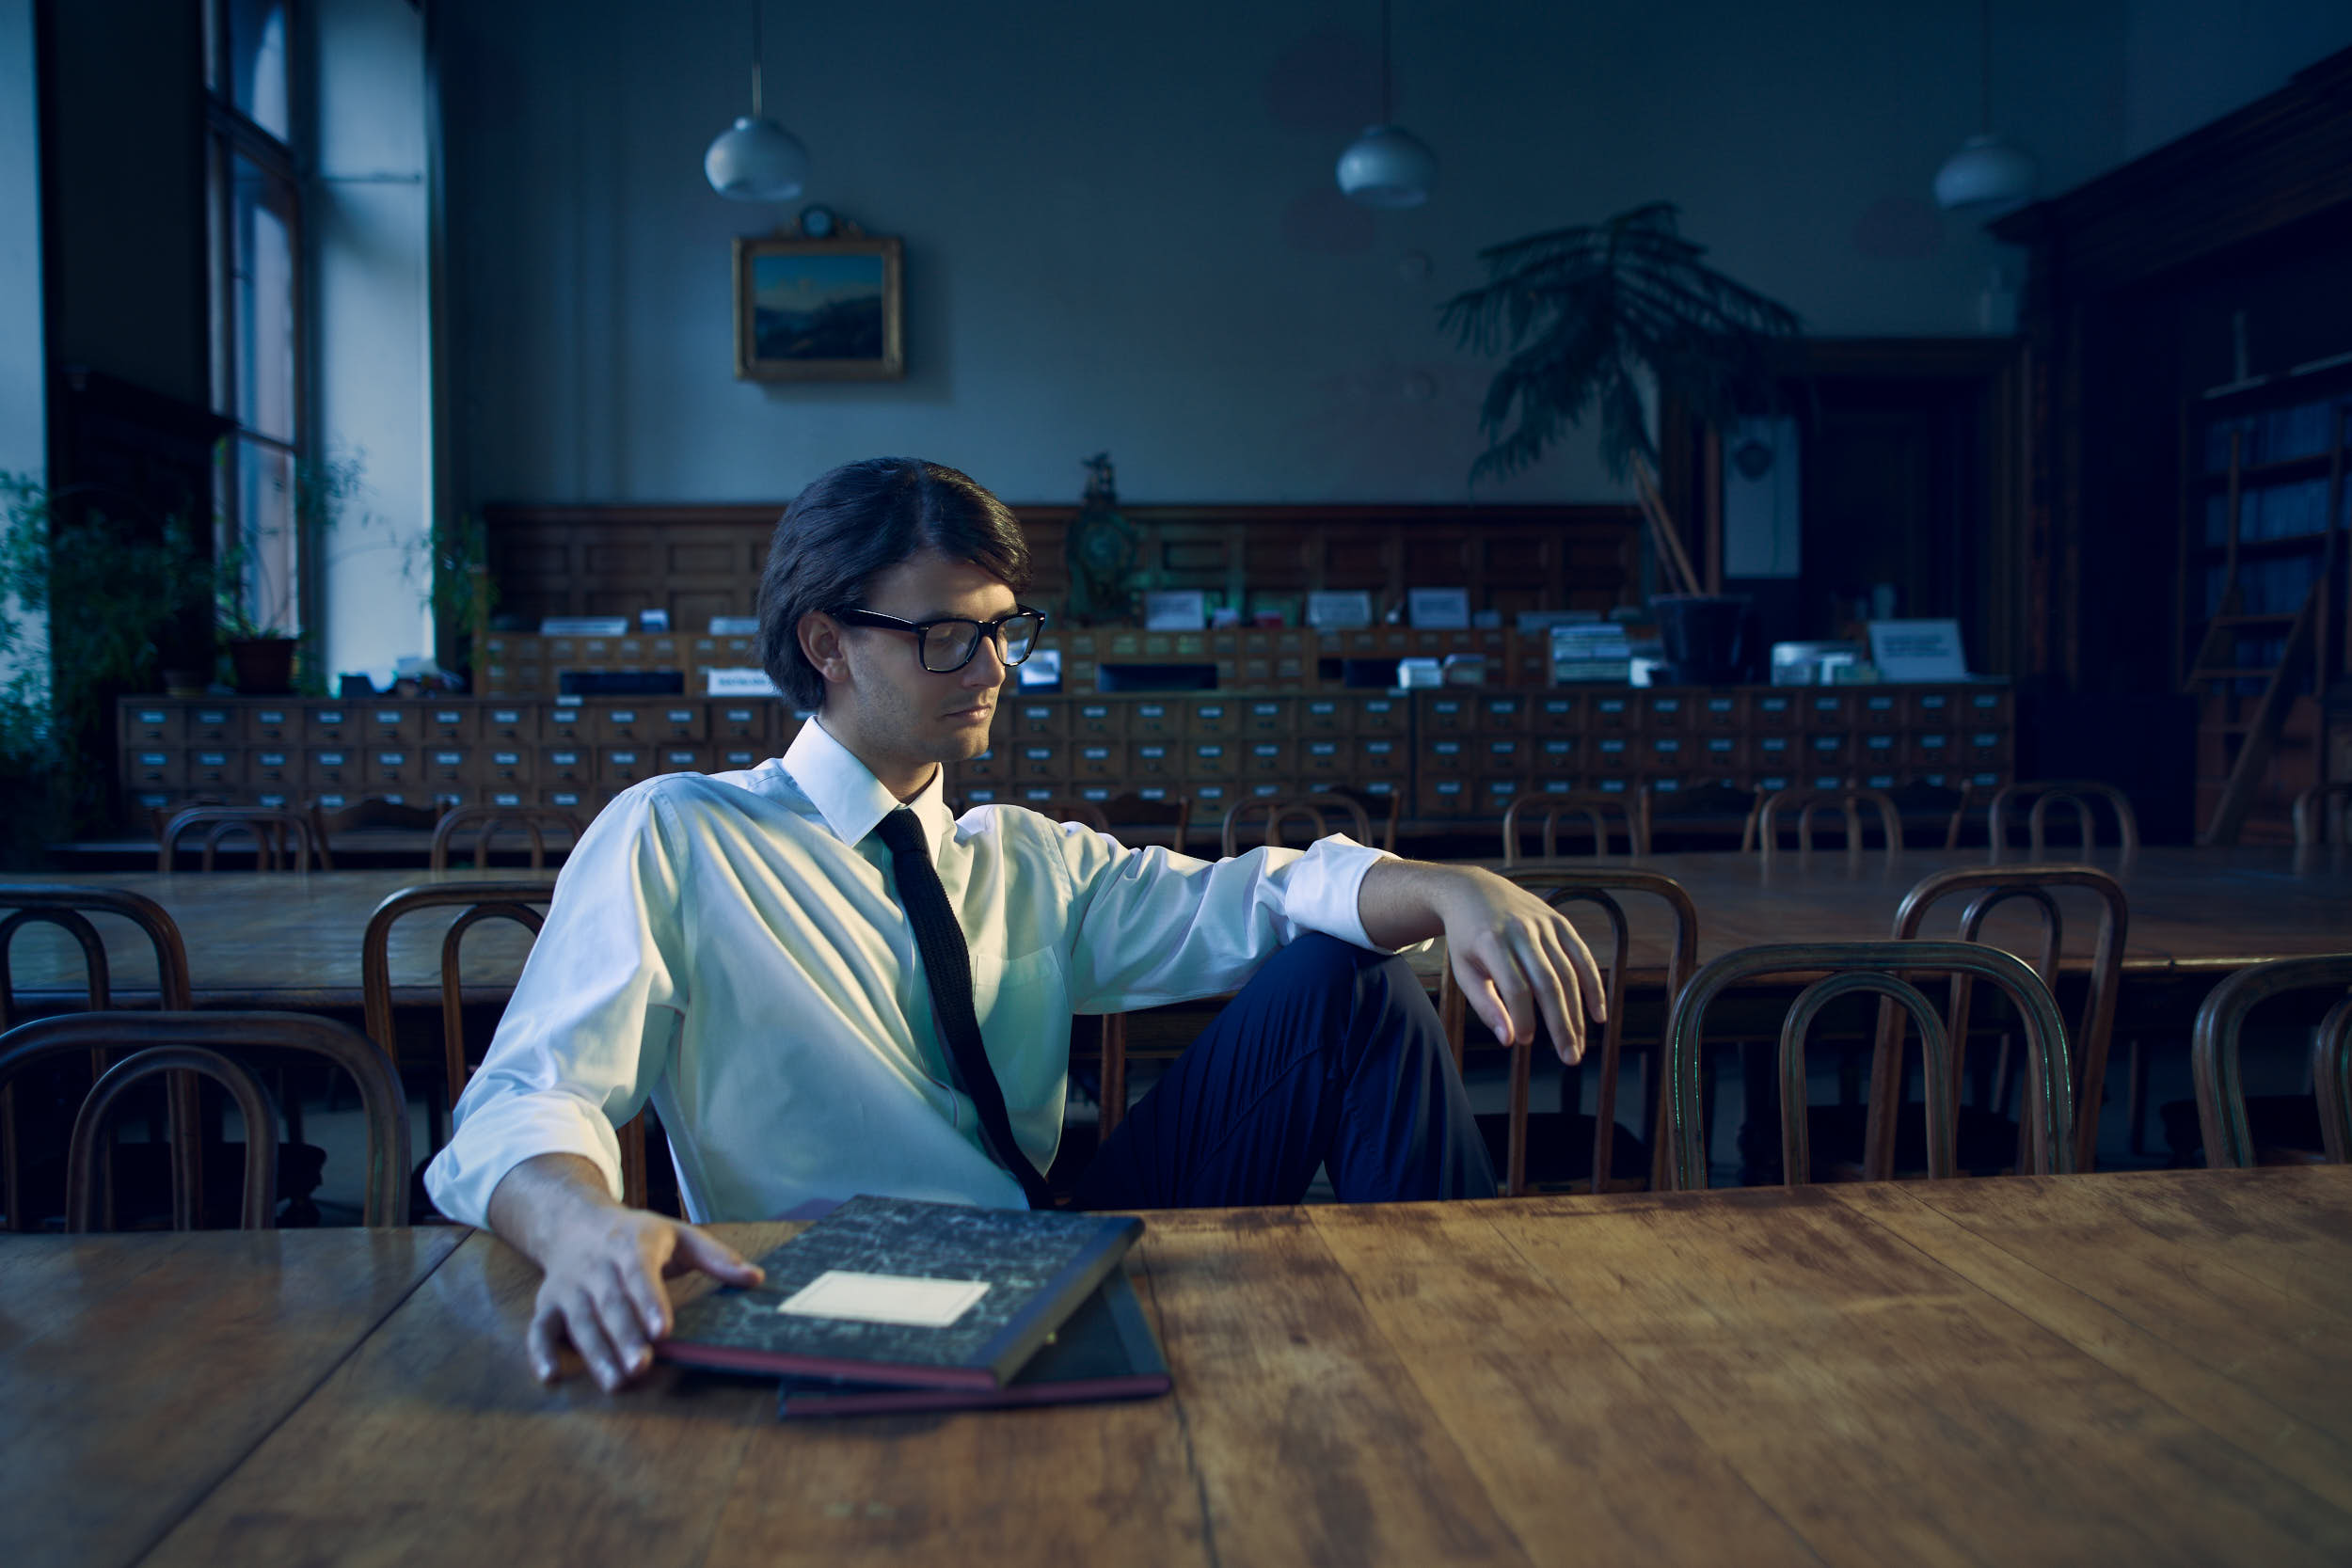 Student with glasses sitting in a library in a cinematic editorial photograph.